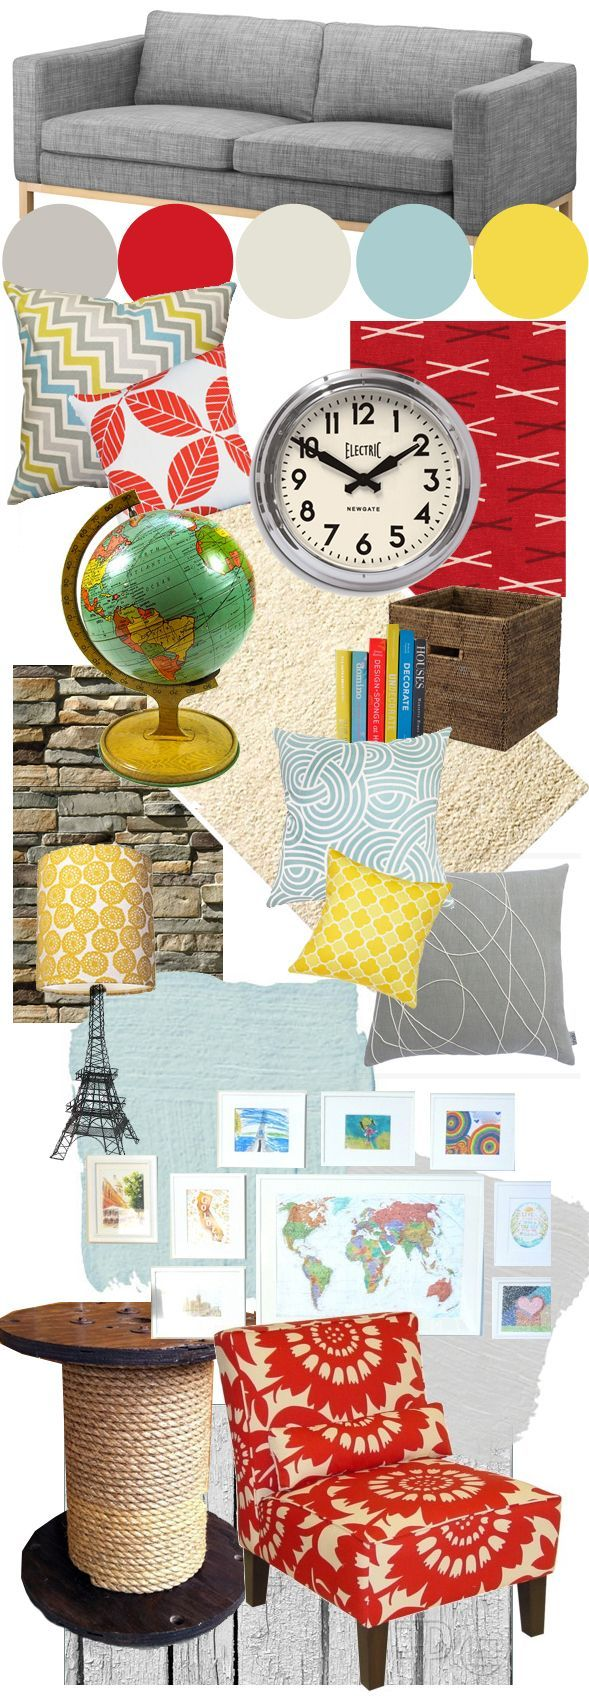 Grey aqua yellow red living room moodboard this - Red and yellow living room decorating ideas ...